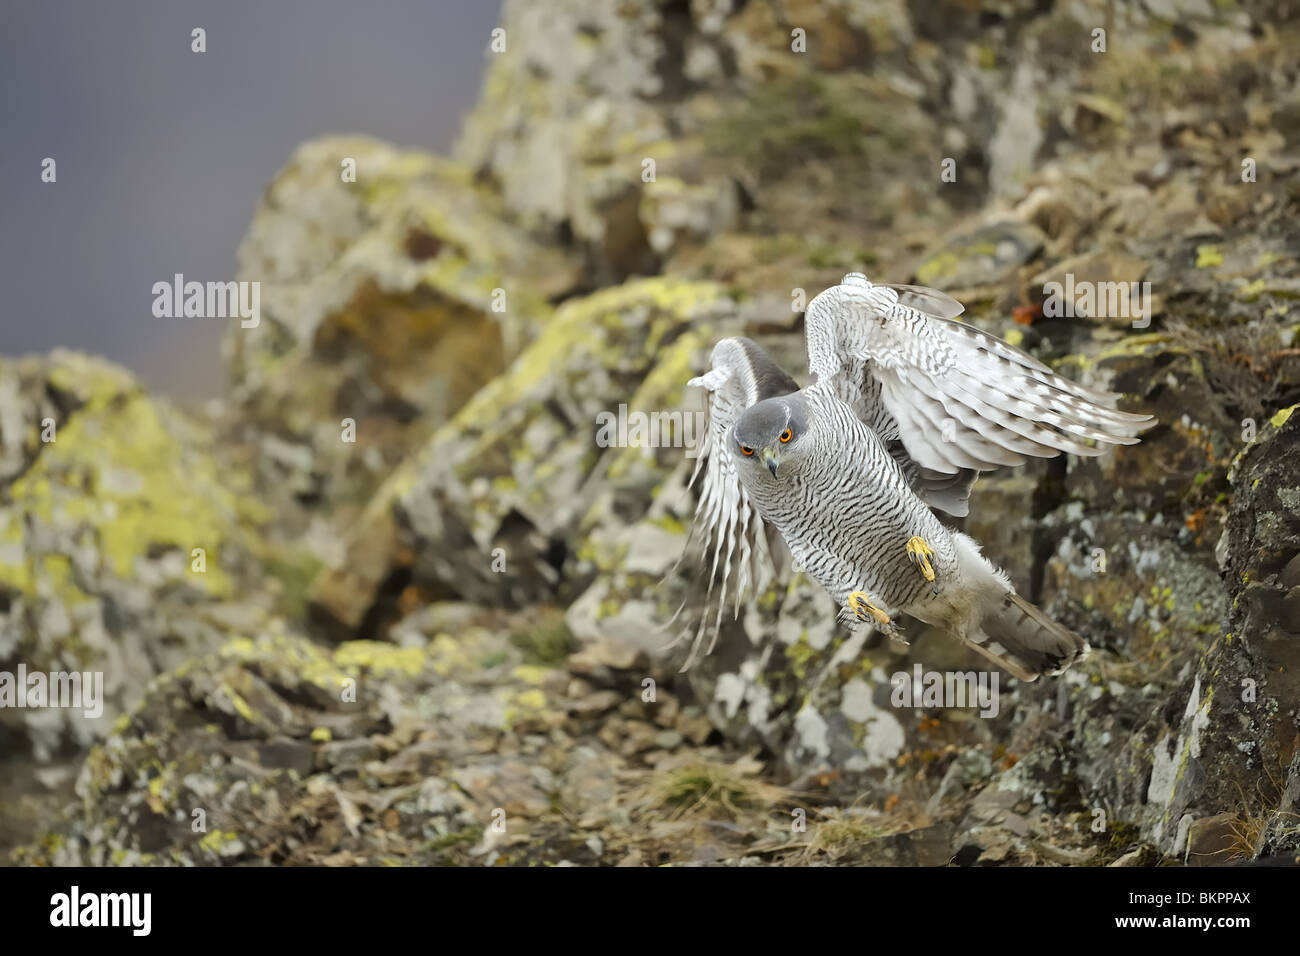 Northern goshawk swooping down upon a prey from a rock - Stock Image